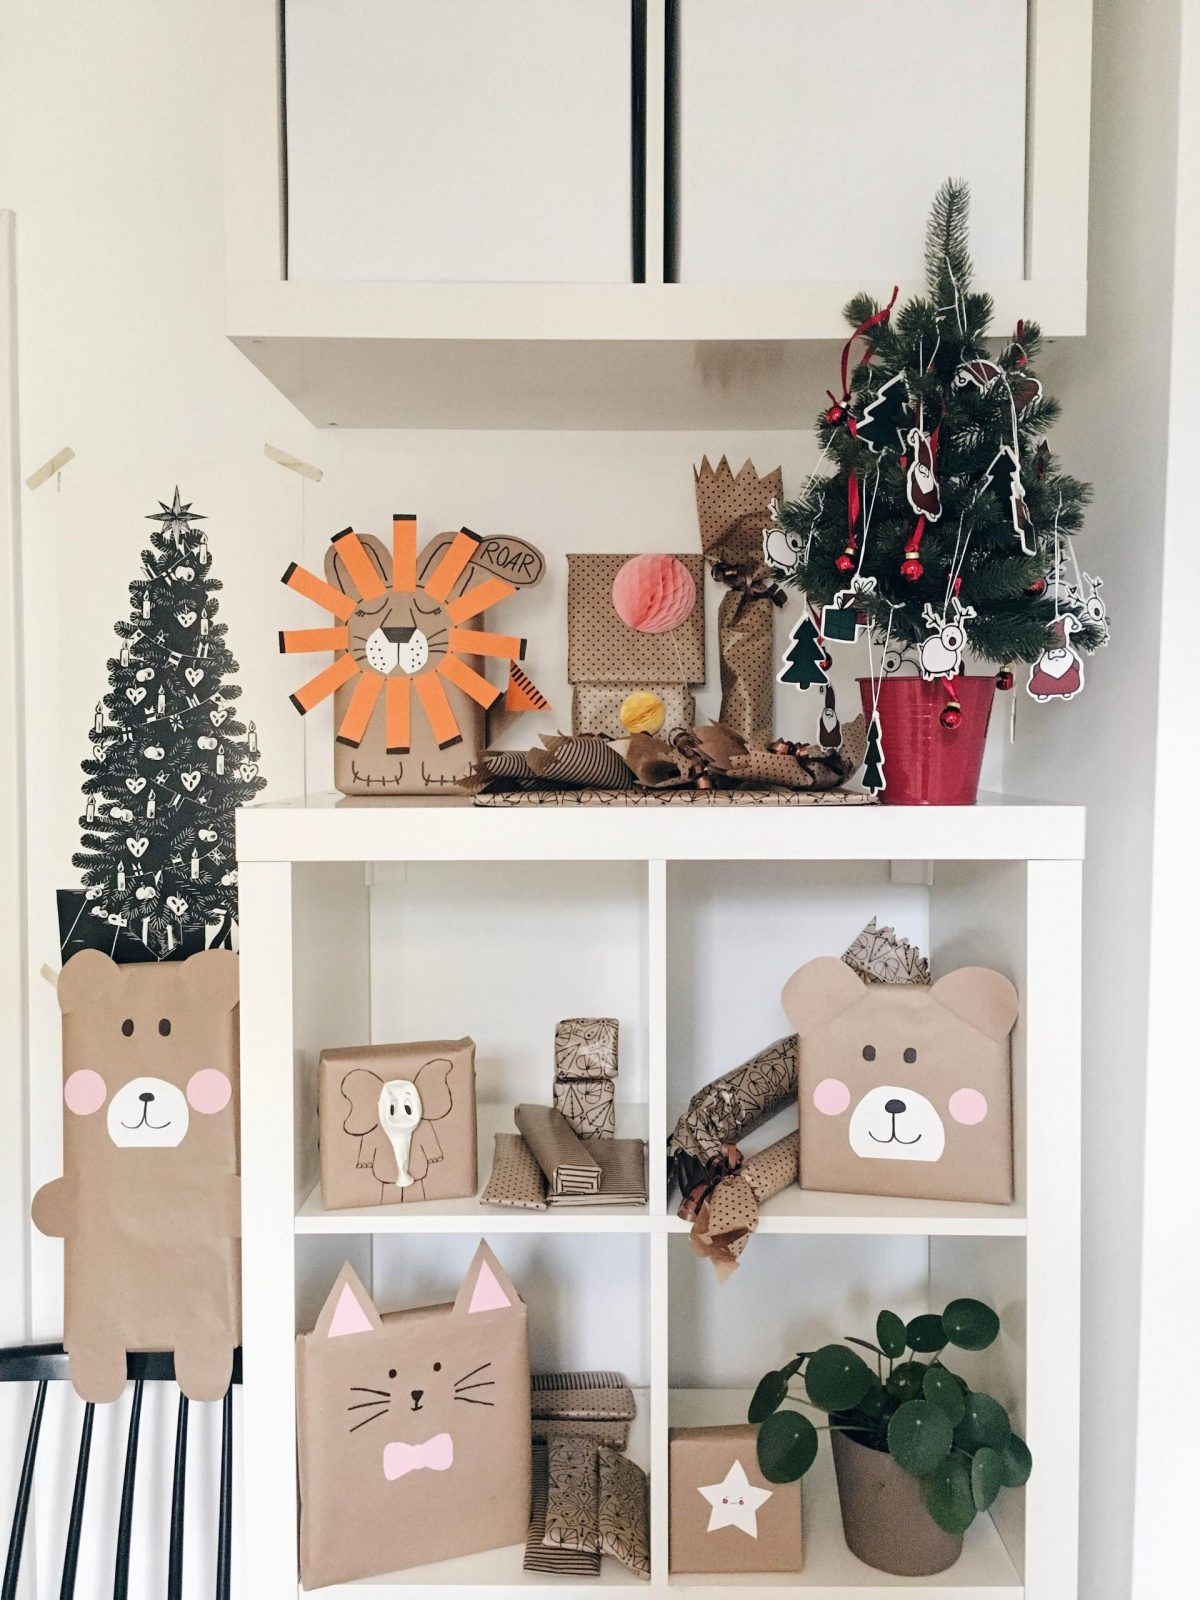 ikea hack adventskalender pinterest geschenkverpackung. Black Bedroom Furniture Sets. Home Design Ideas